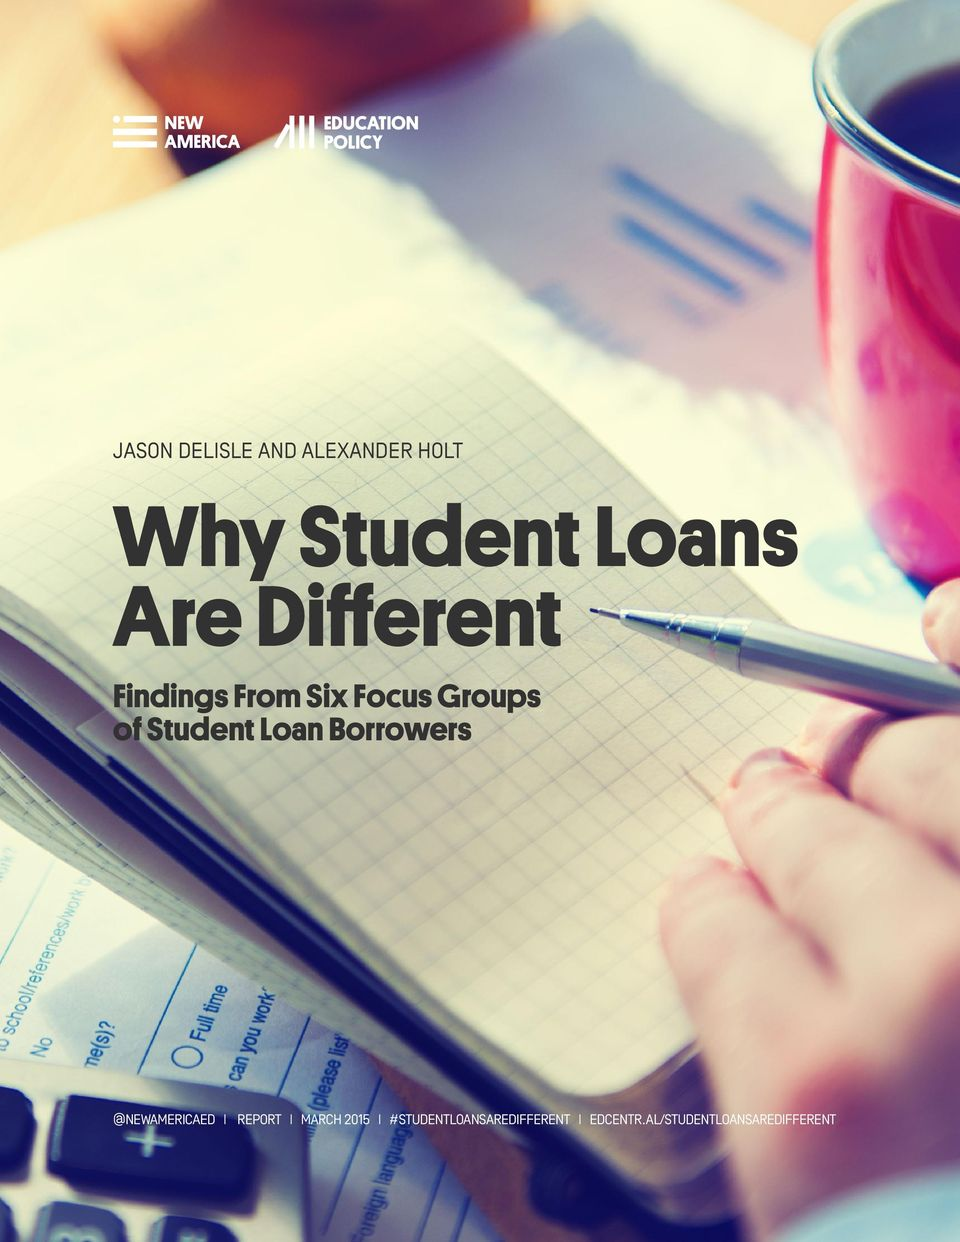 Findings From Six Focus Groups of Student Loan Borrowers @NEWAMERICAED